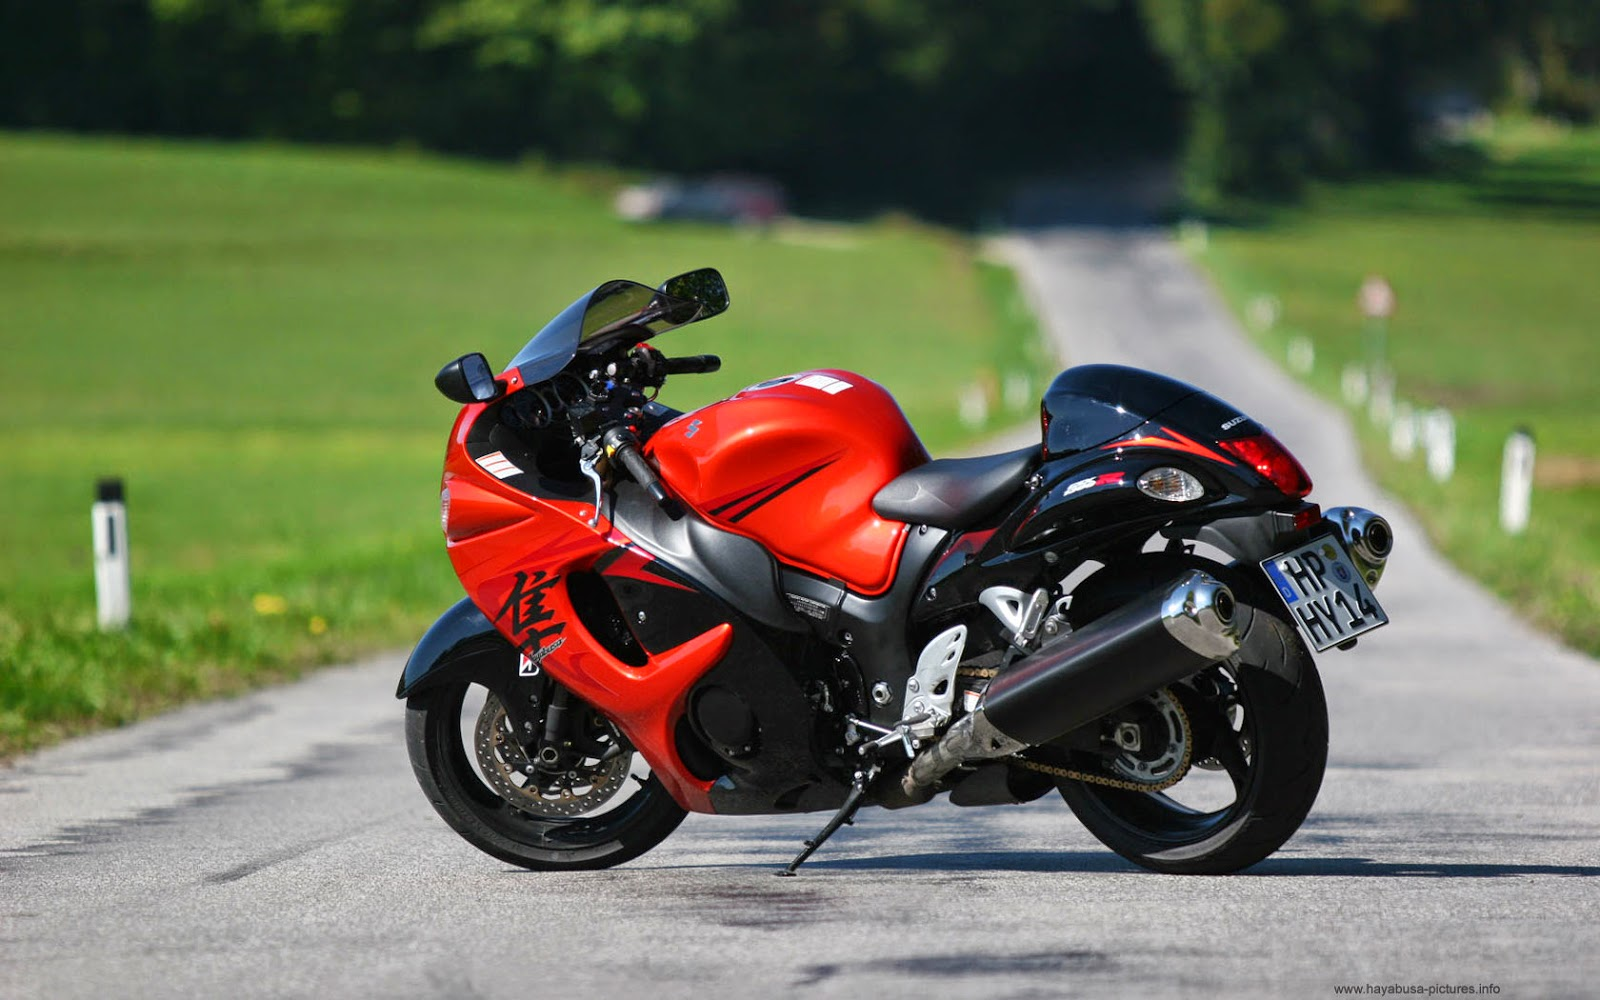 Suzuki hayabusa top 10 hd wallpapers specification price - Best wallpapers of cars and bikes ...